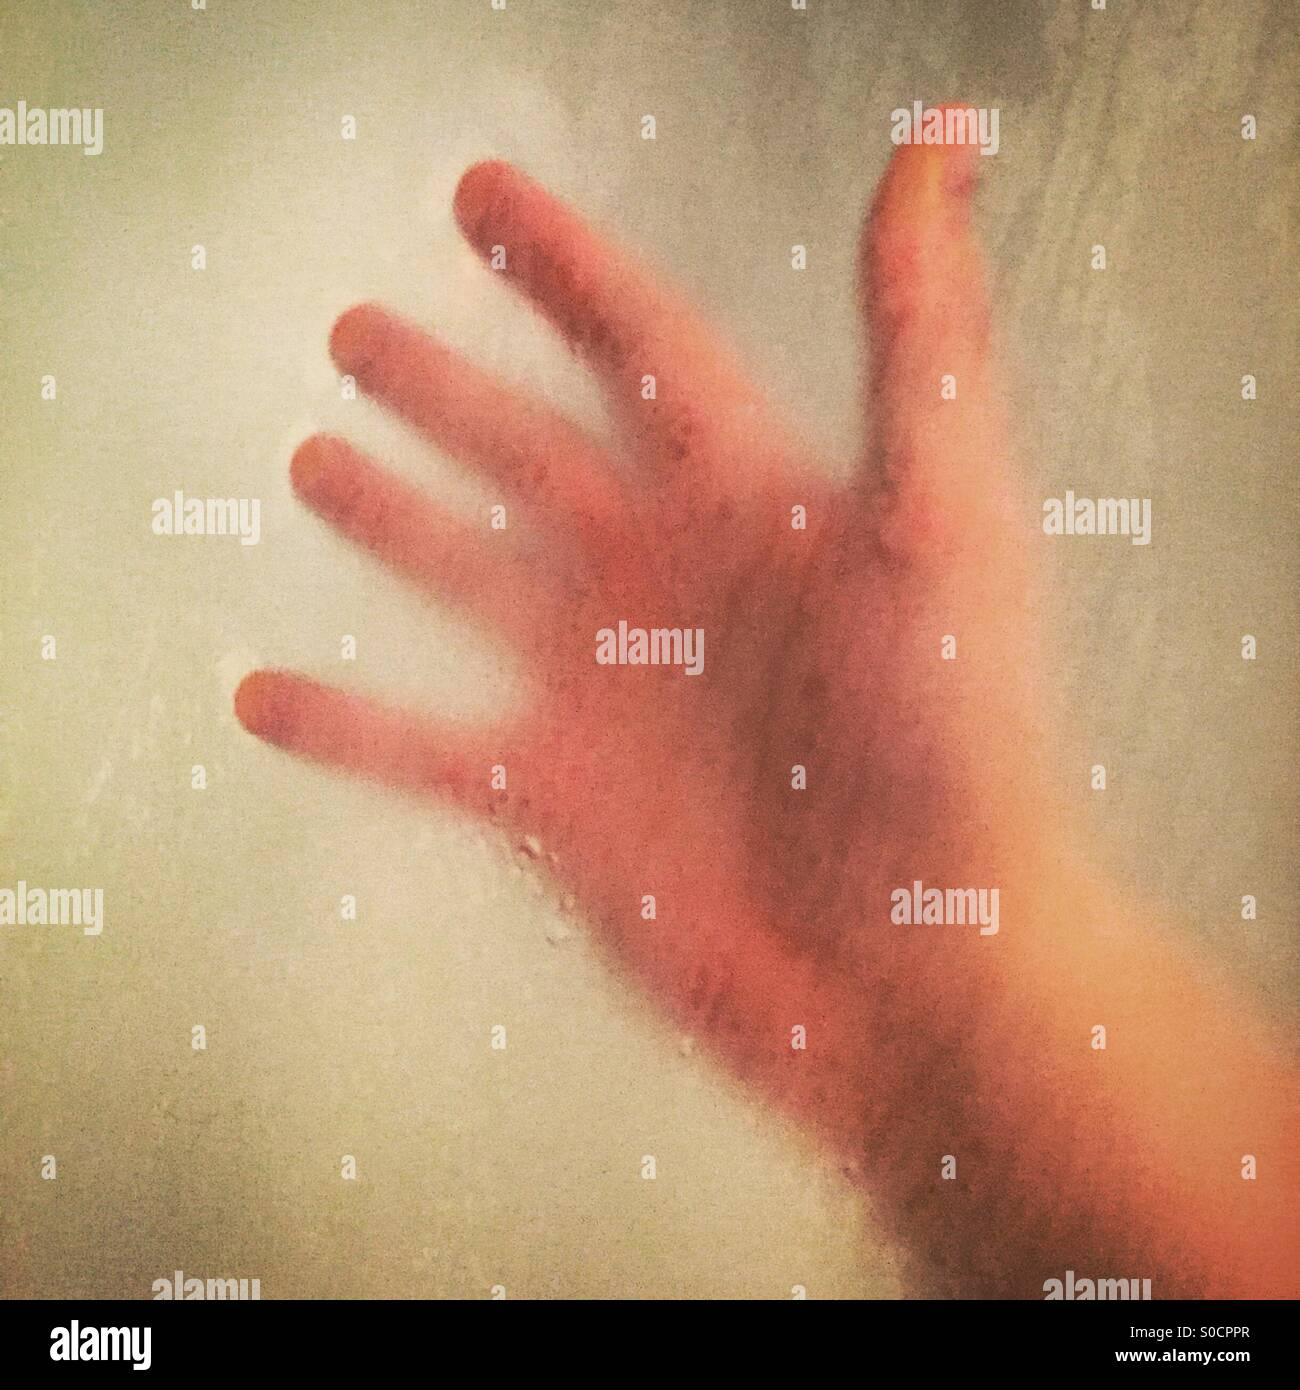 Right hand of a male resting on shower screen all condensation. - Stock Image